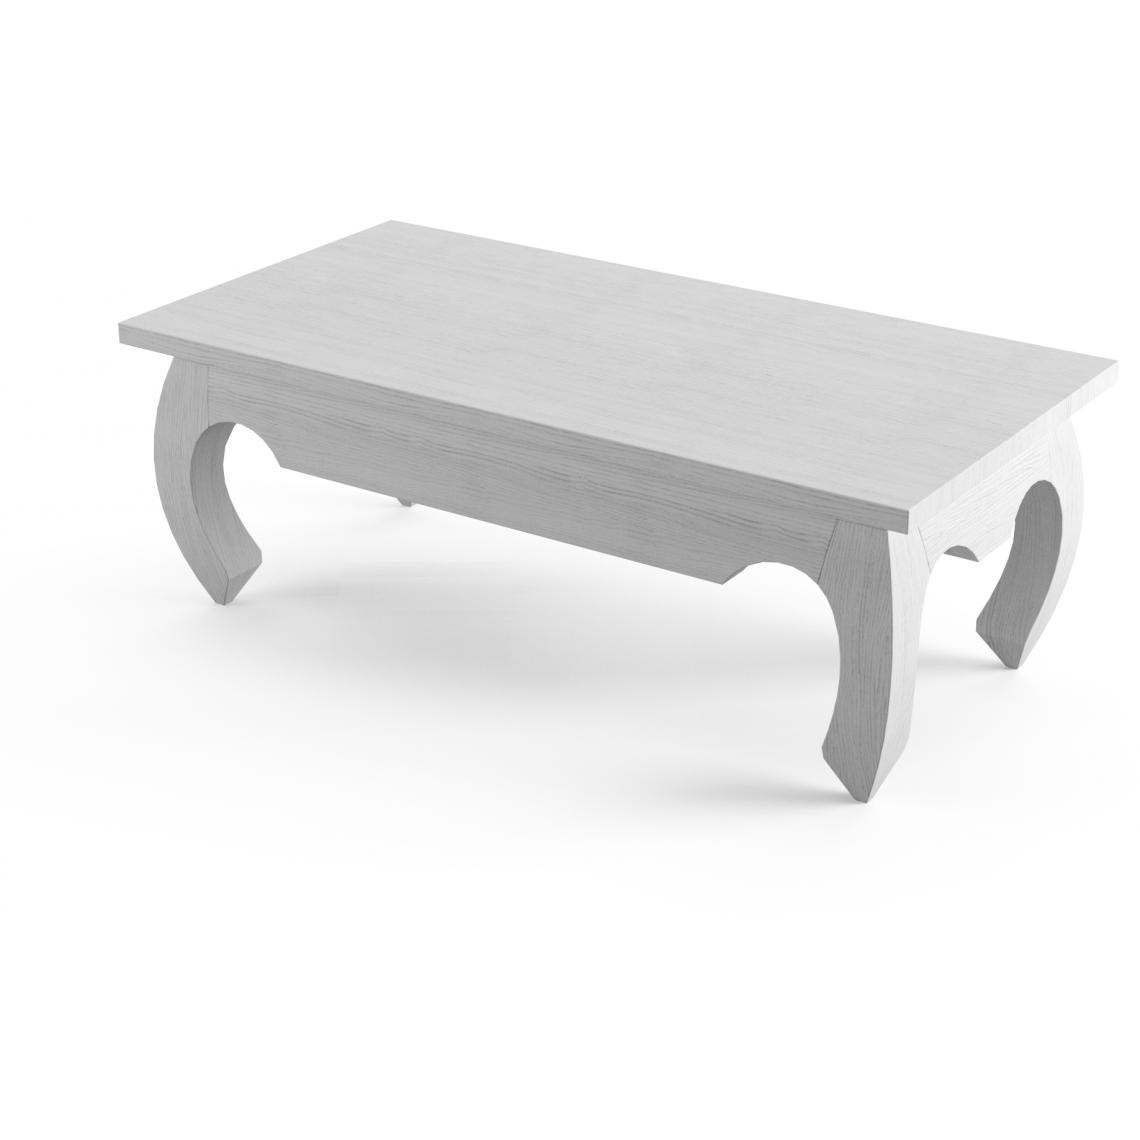 table basse rectangulaire bois blanche